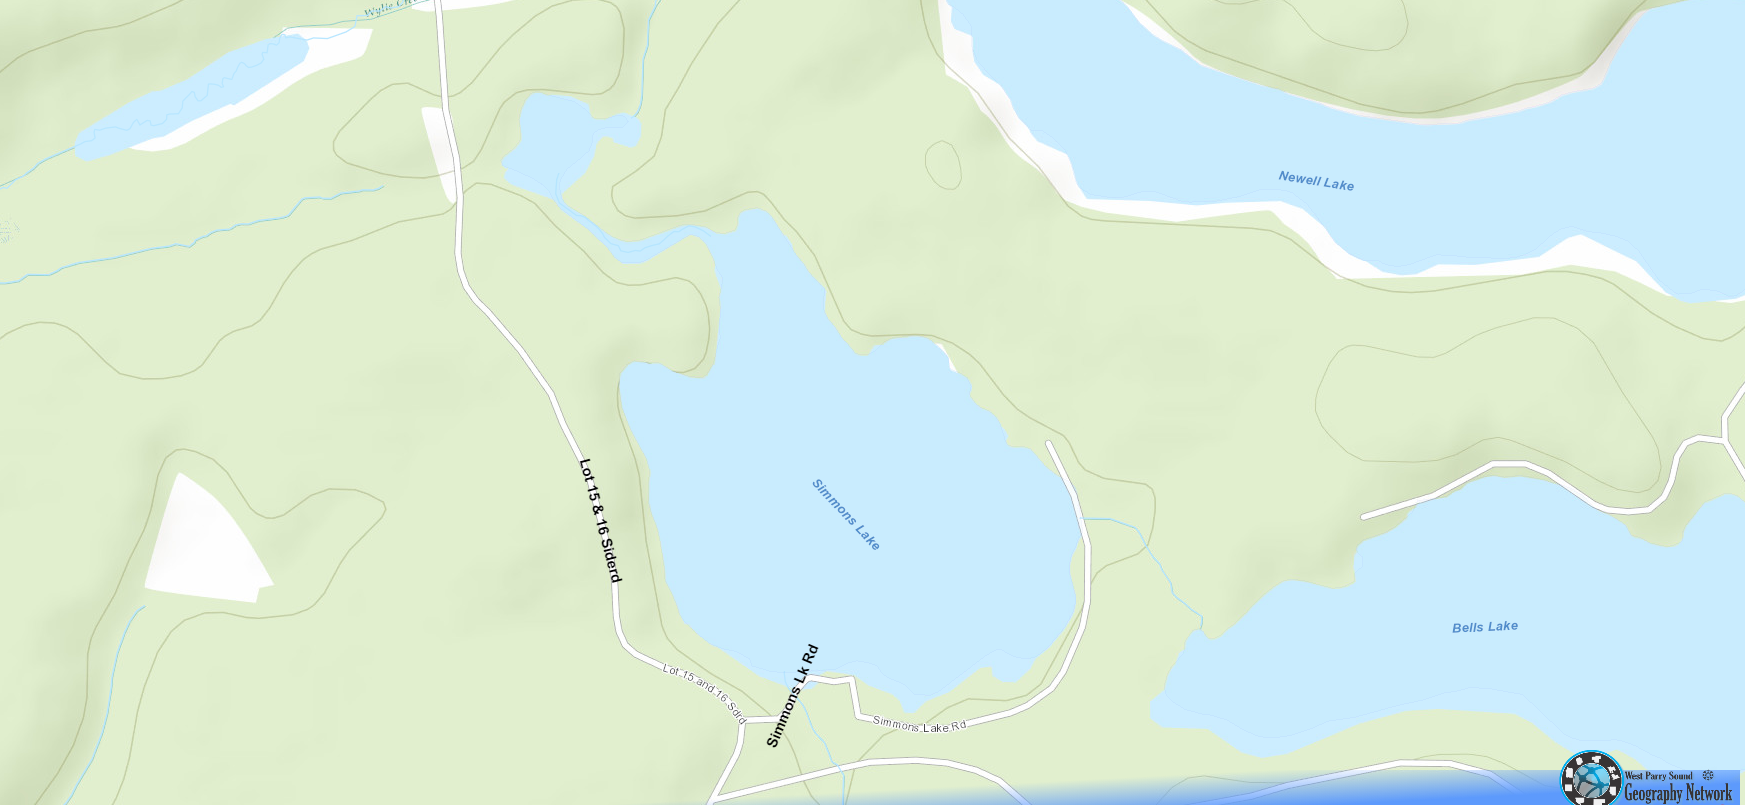 Simmons Lake Cadastral Map - Simmons Lake - Muskoka